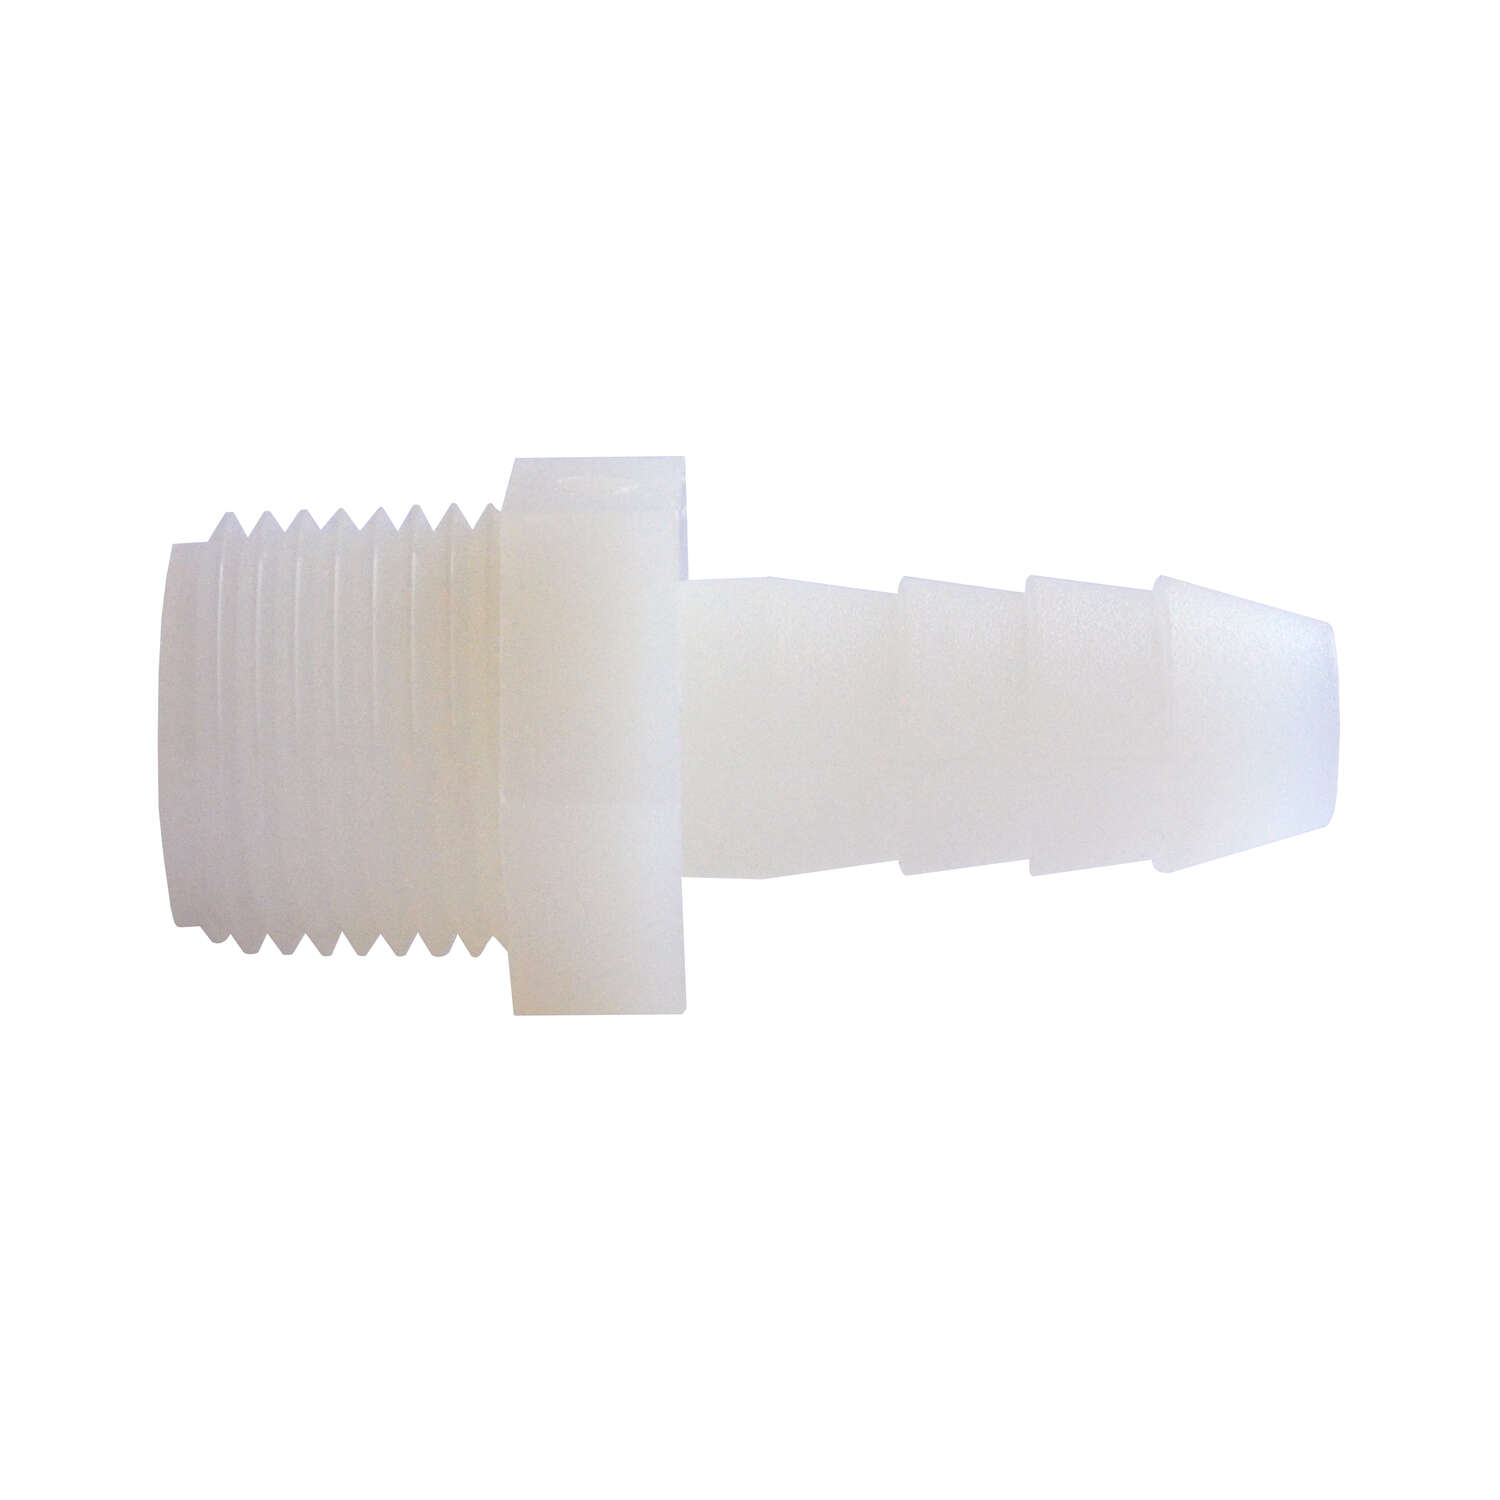 Green Leaf  Nylon  1/4 in. Dia. x 1/4 in. Dia. Adapter  1 pk